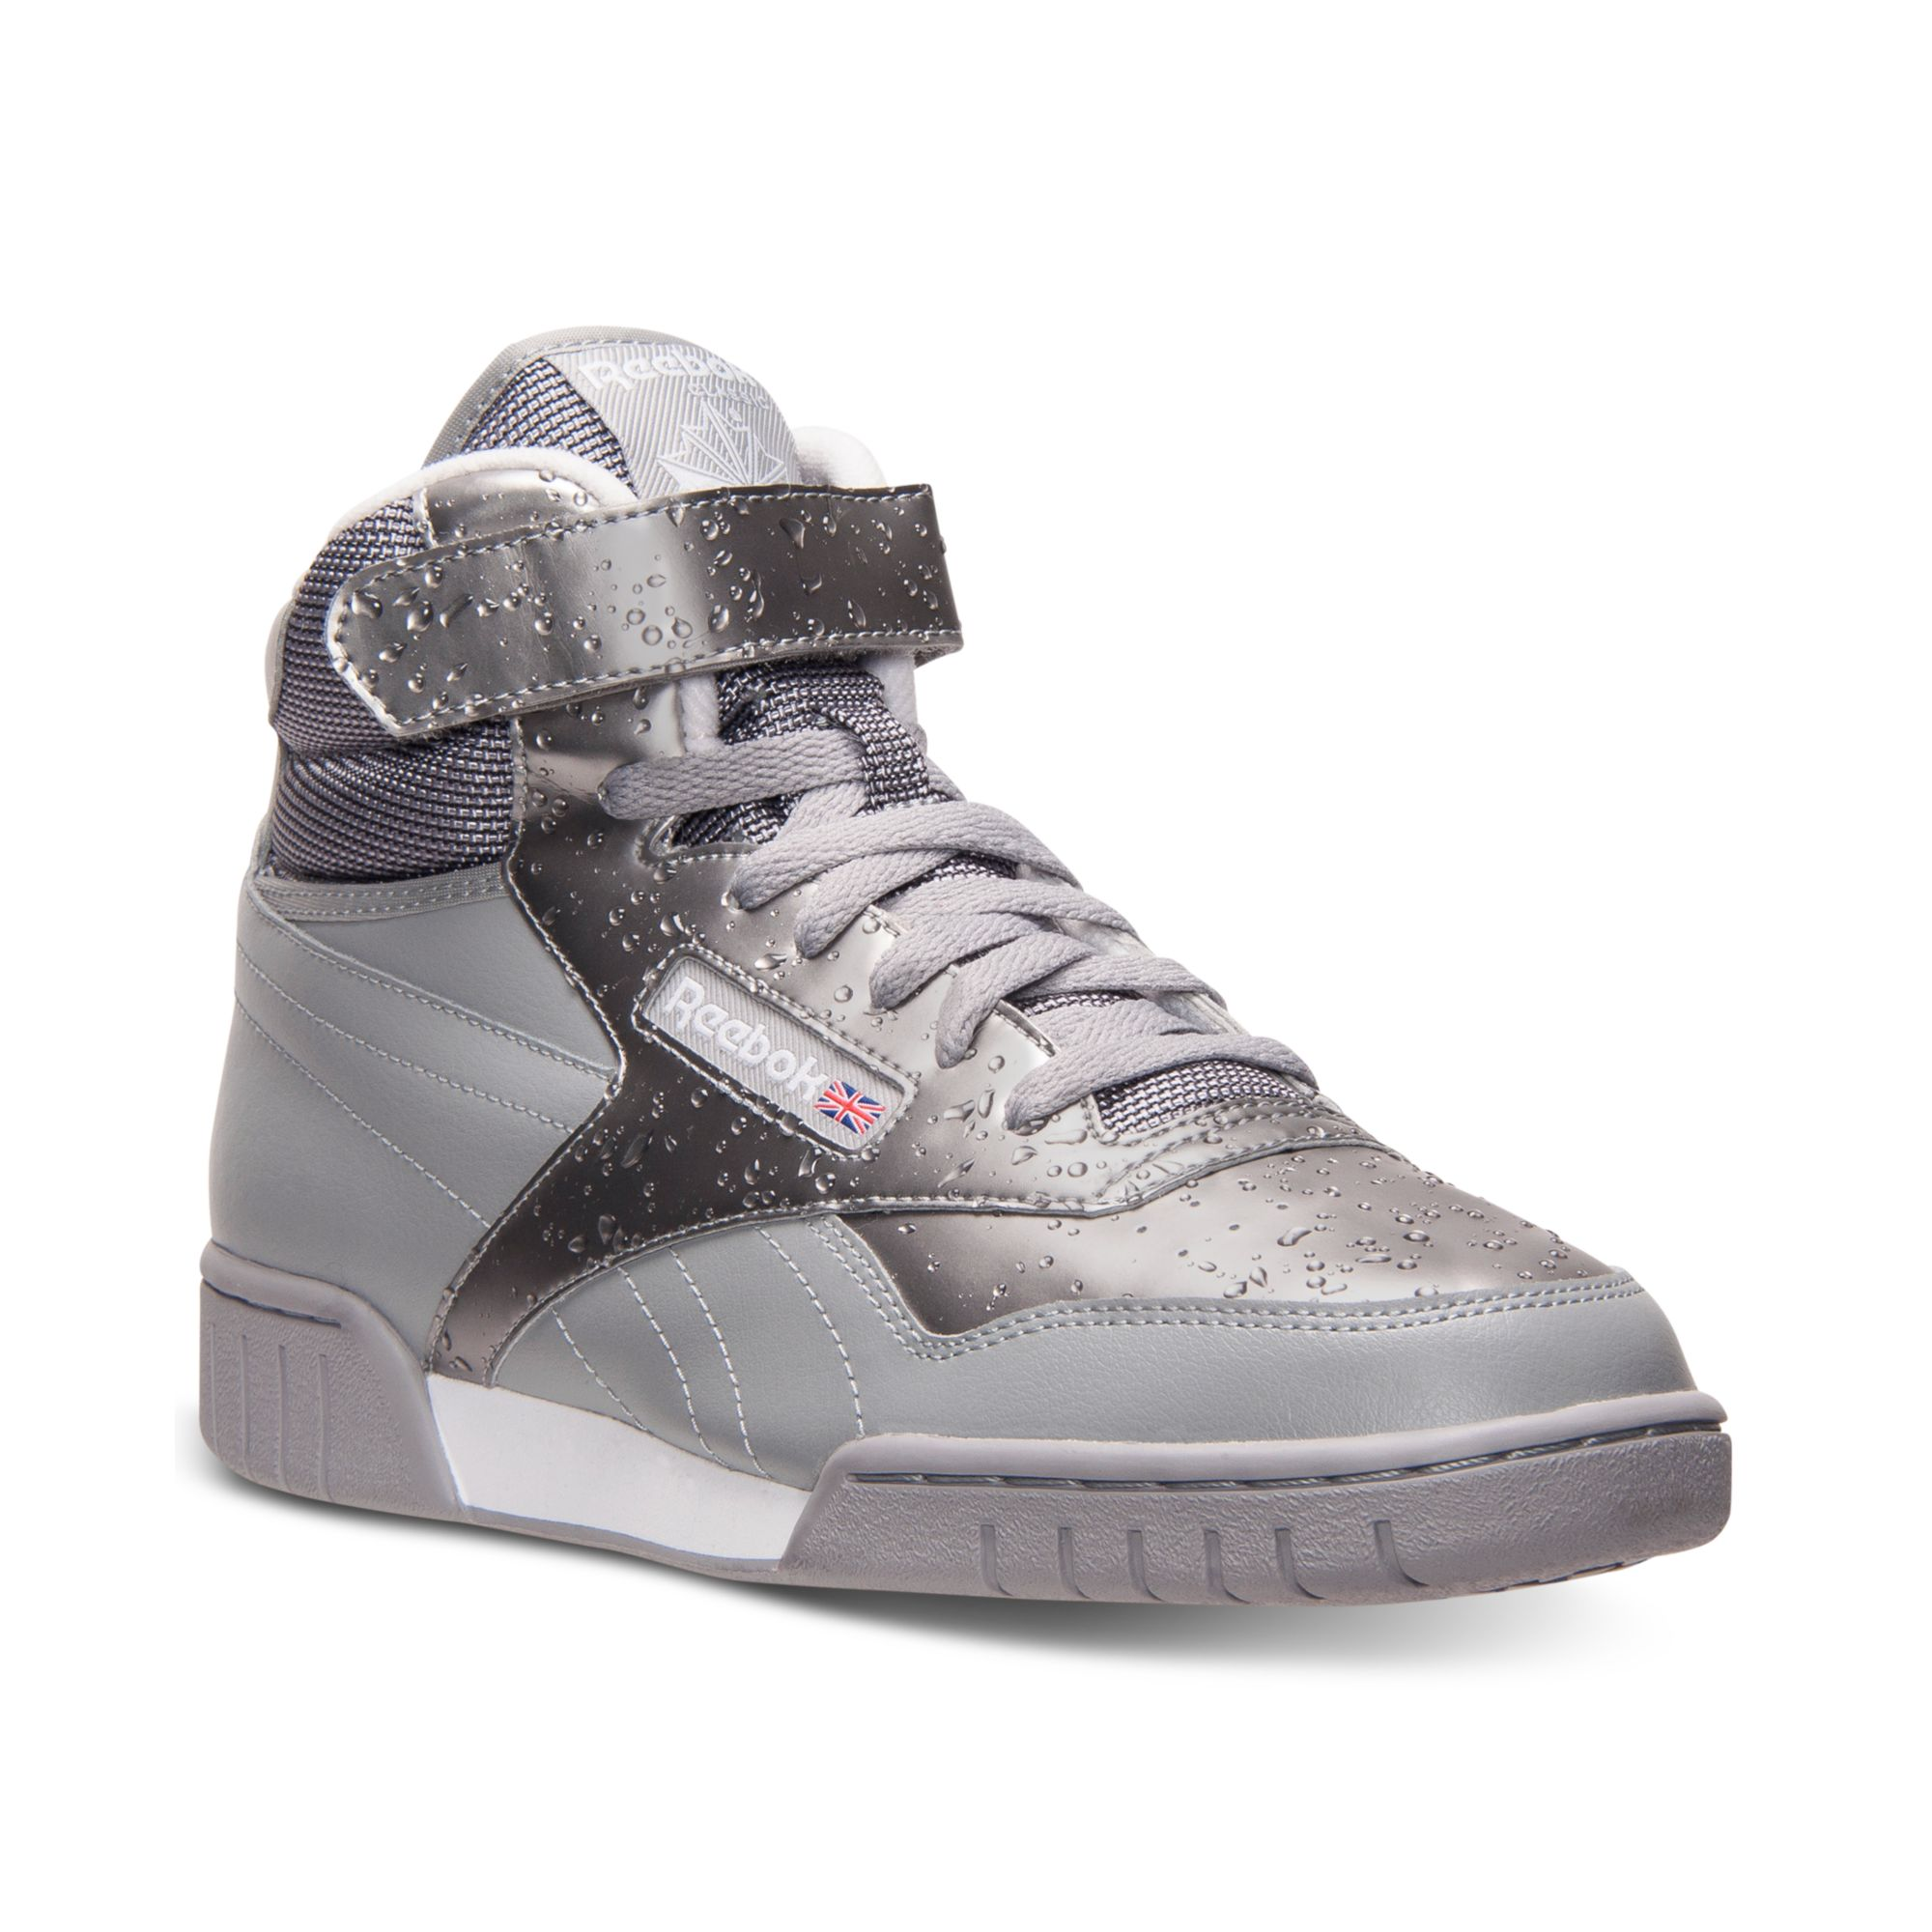 lyst reebok ex o fit mid wt casual sneakers in gray for men. Black Bedroom Furniture Sets. Home Design Ideas